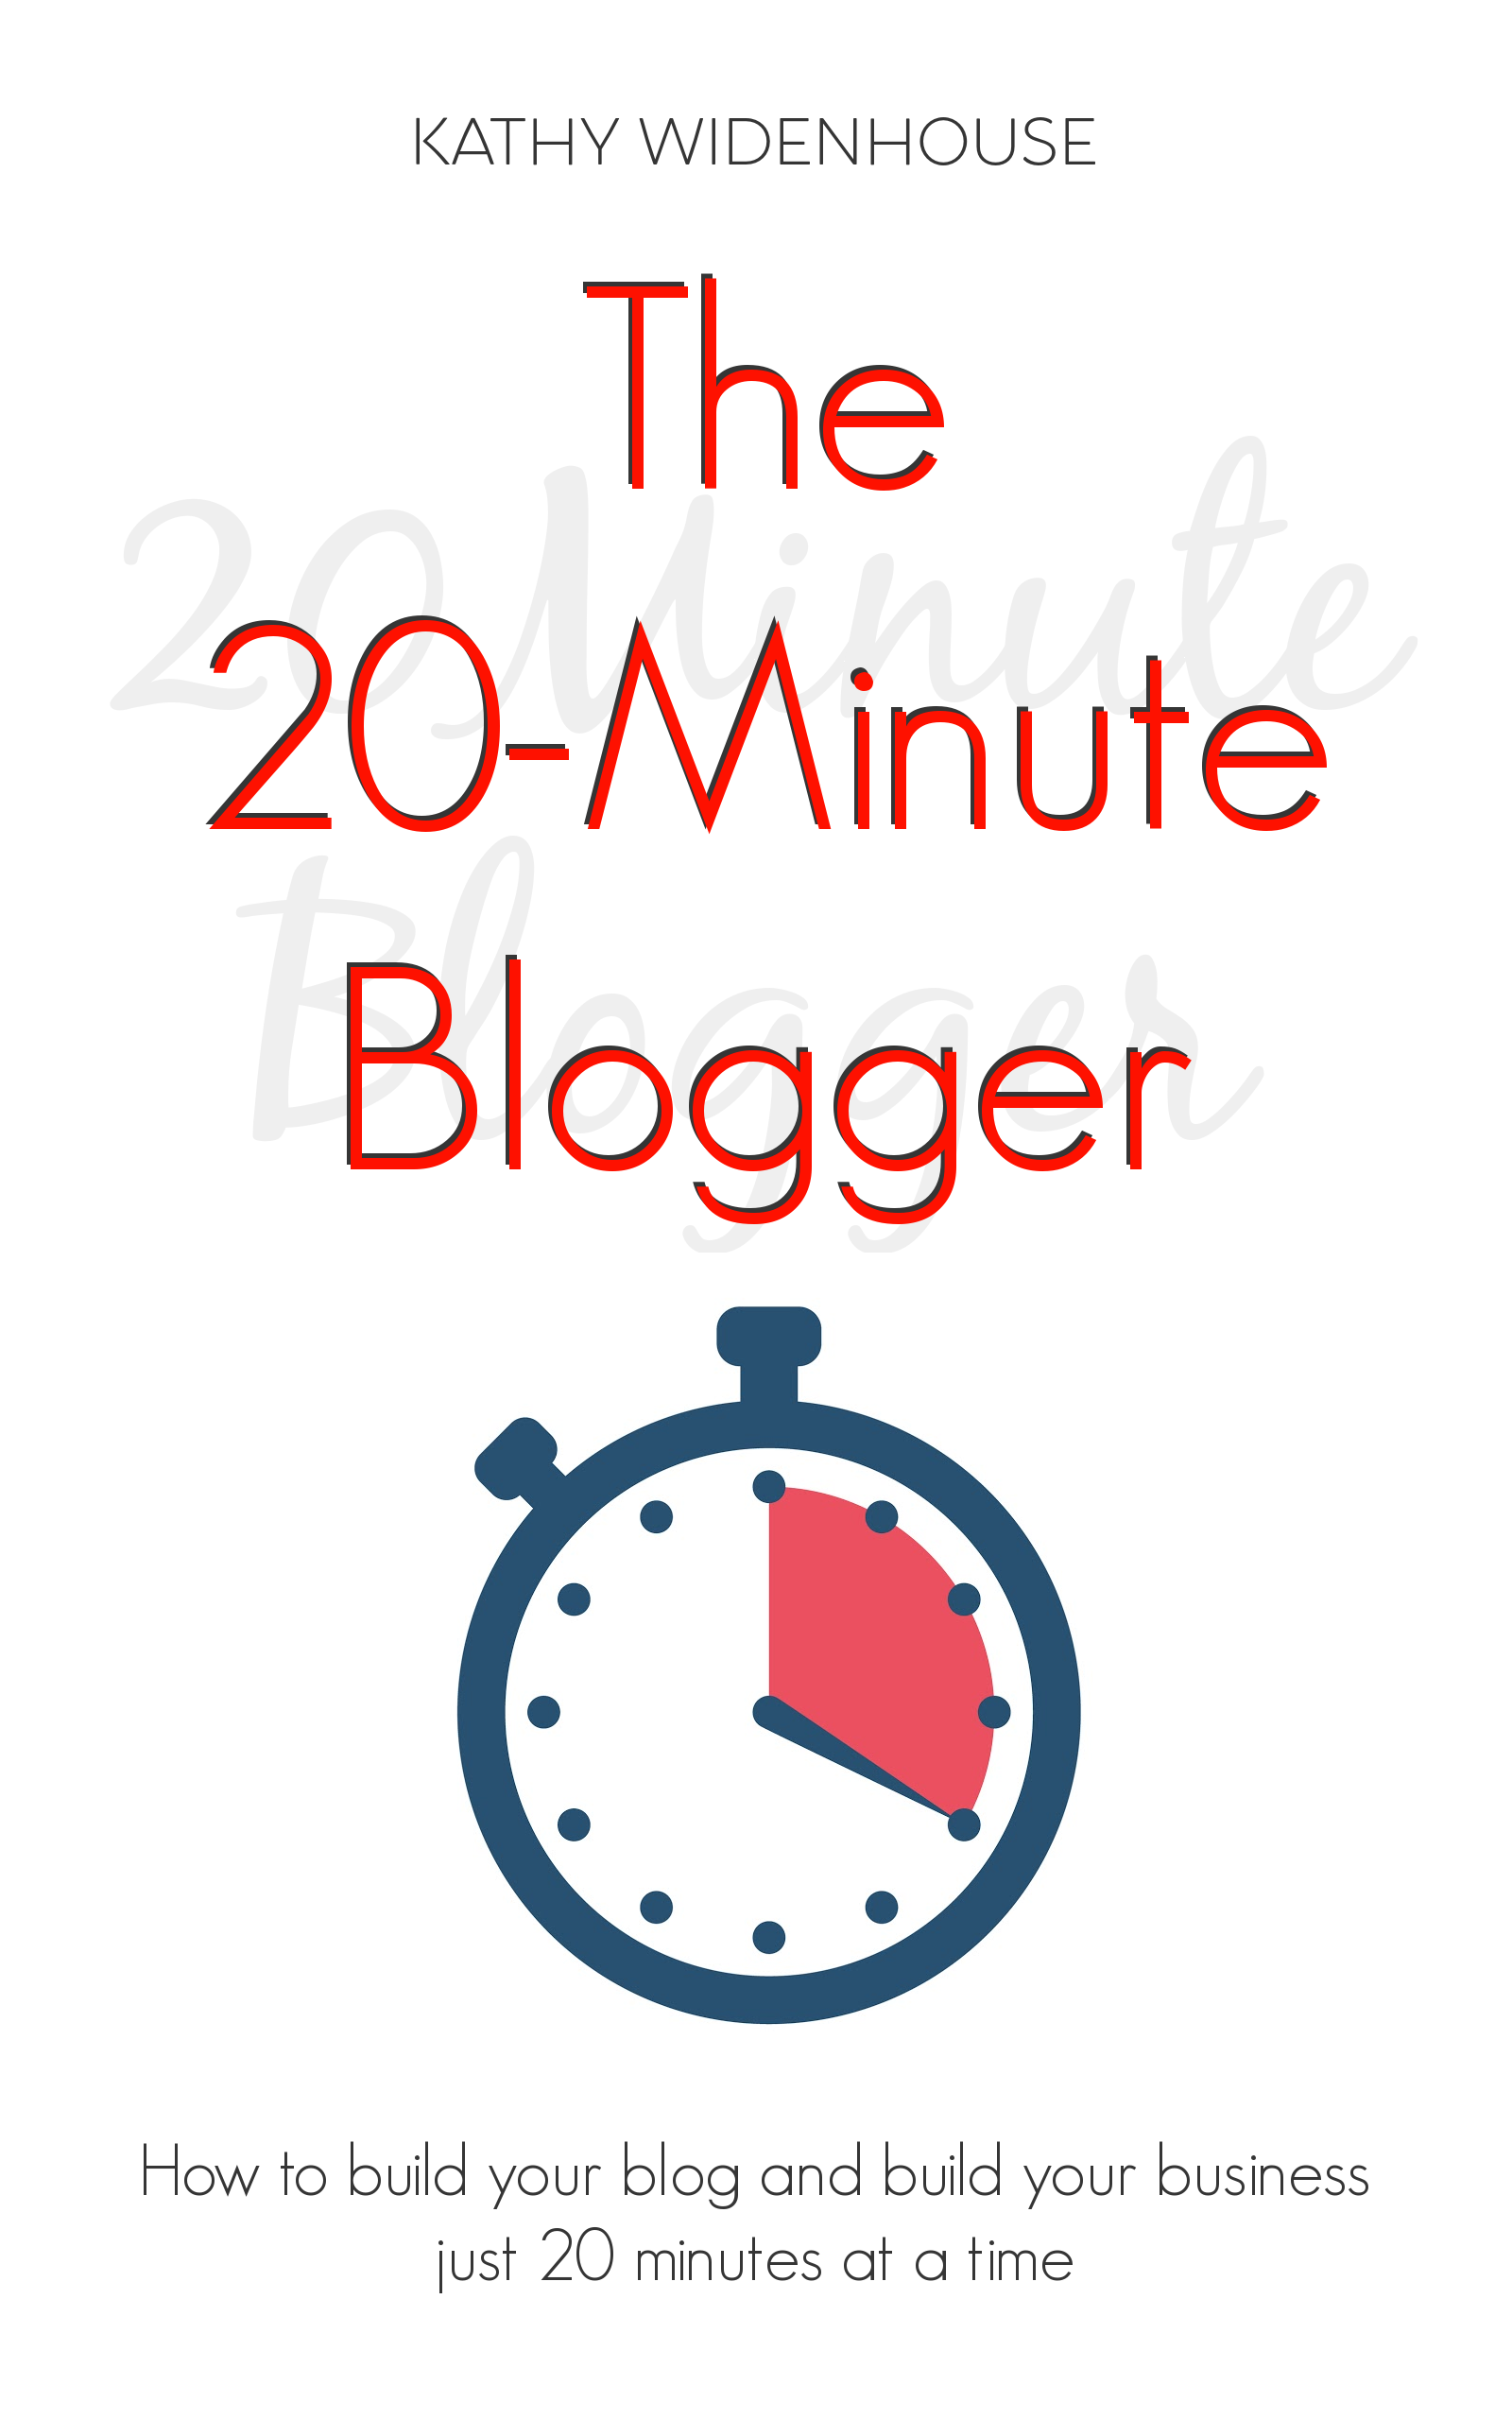 The 20-Minute Blogger: build your #blog just 20 minutes at a time with Word Wise at Nonprofit Copywriter #blogging #WritingTips